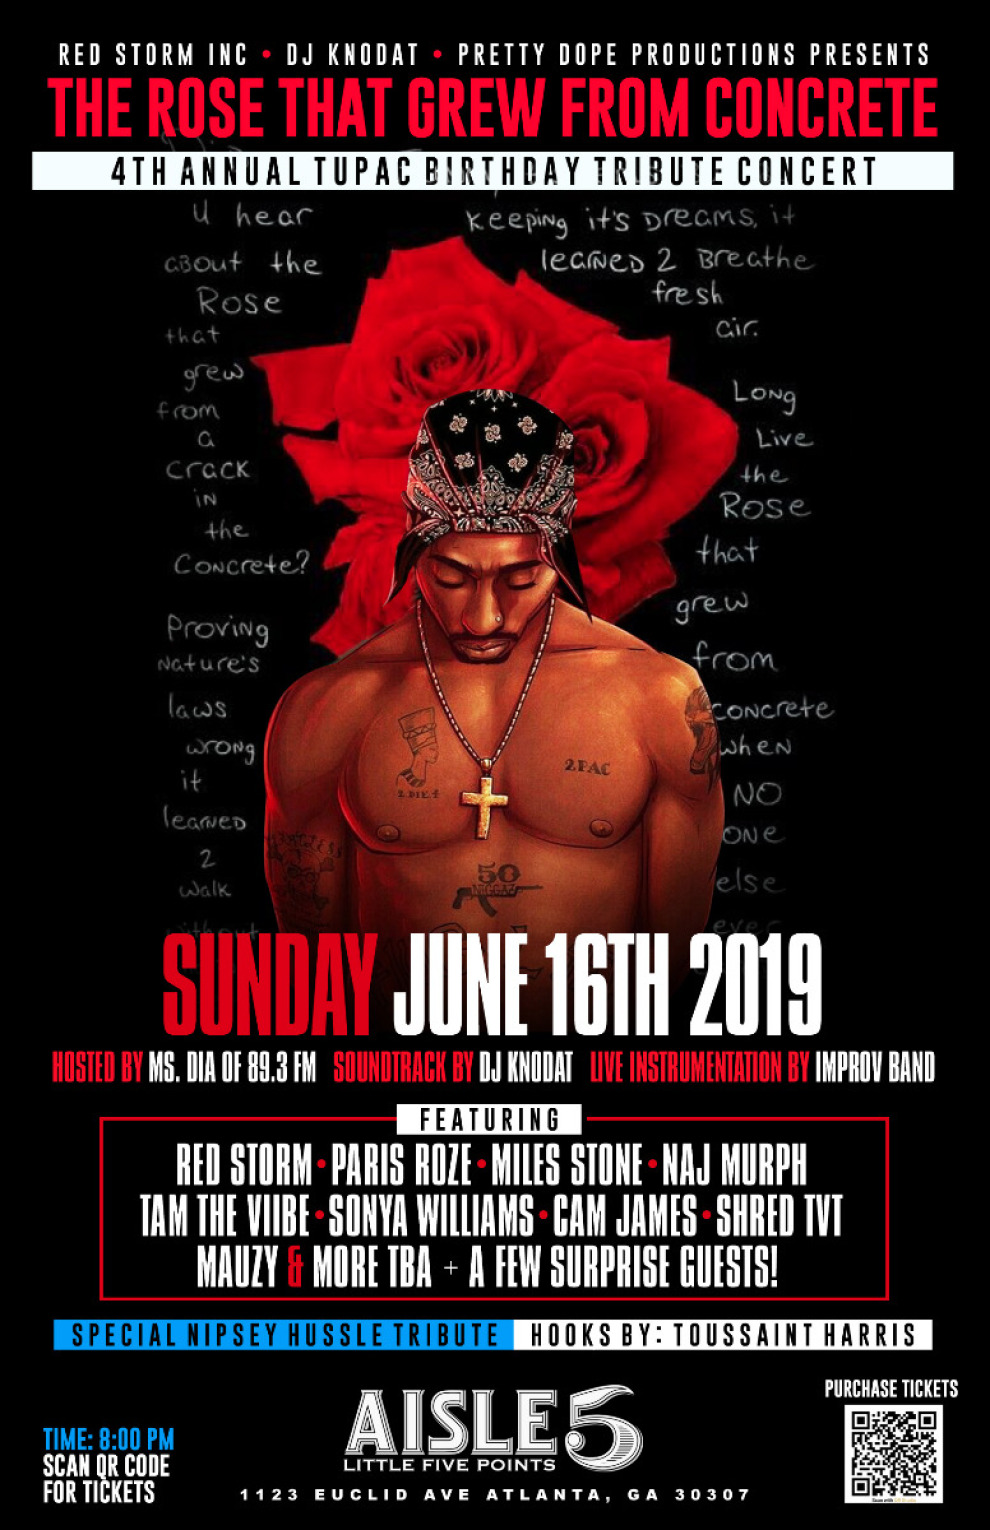 2PAC BDAY TRIBUTE 2019 POSTER